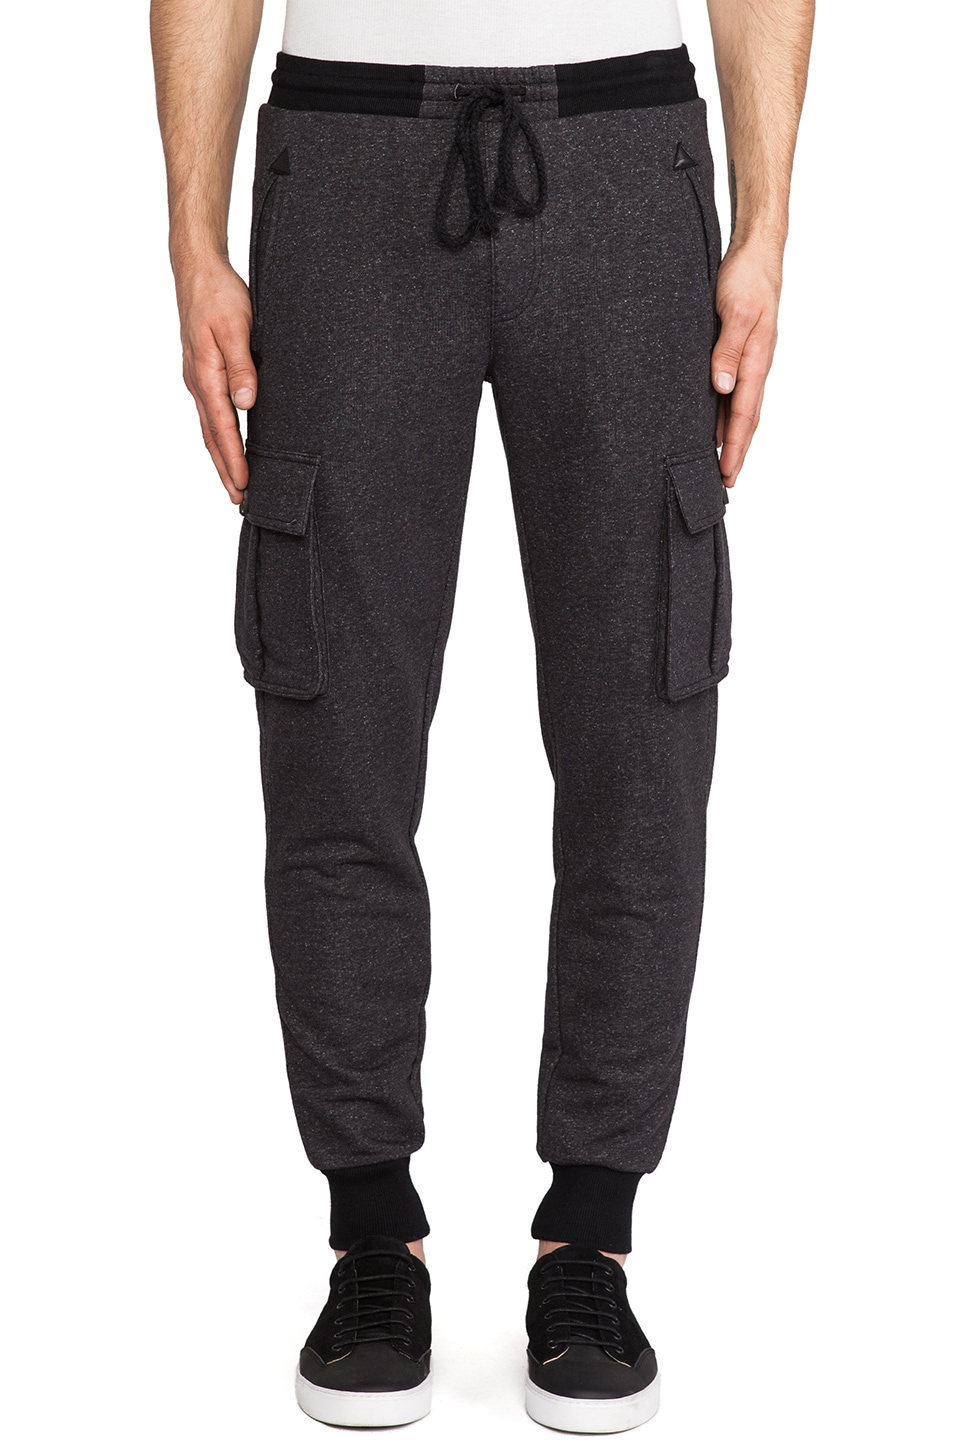 TOVAR Headon Pant in Charcoal